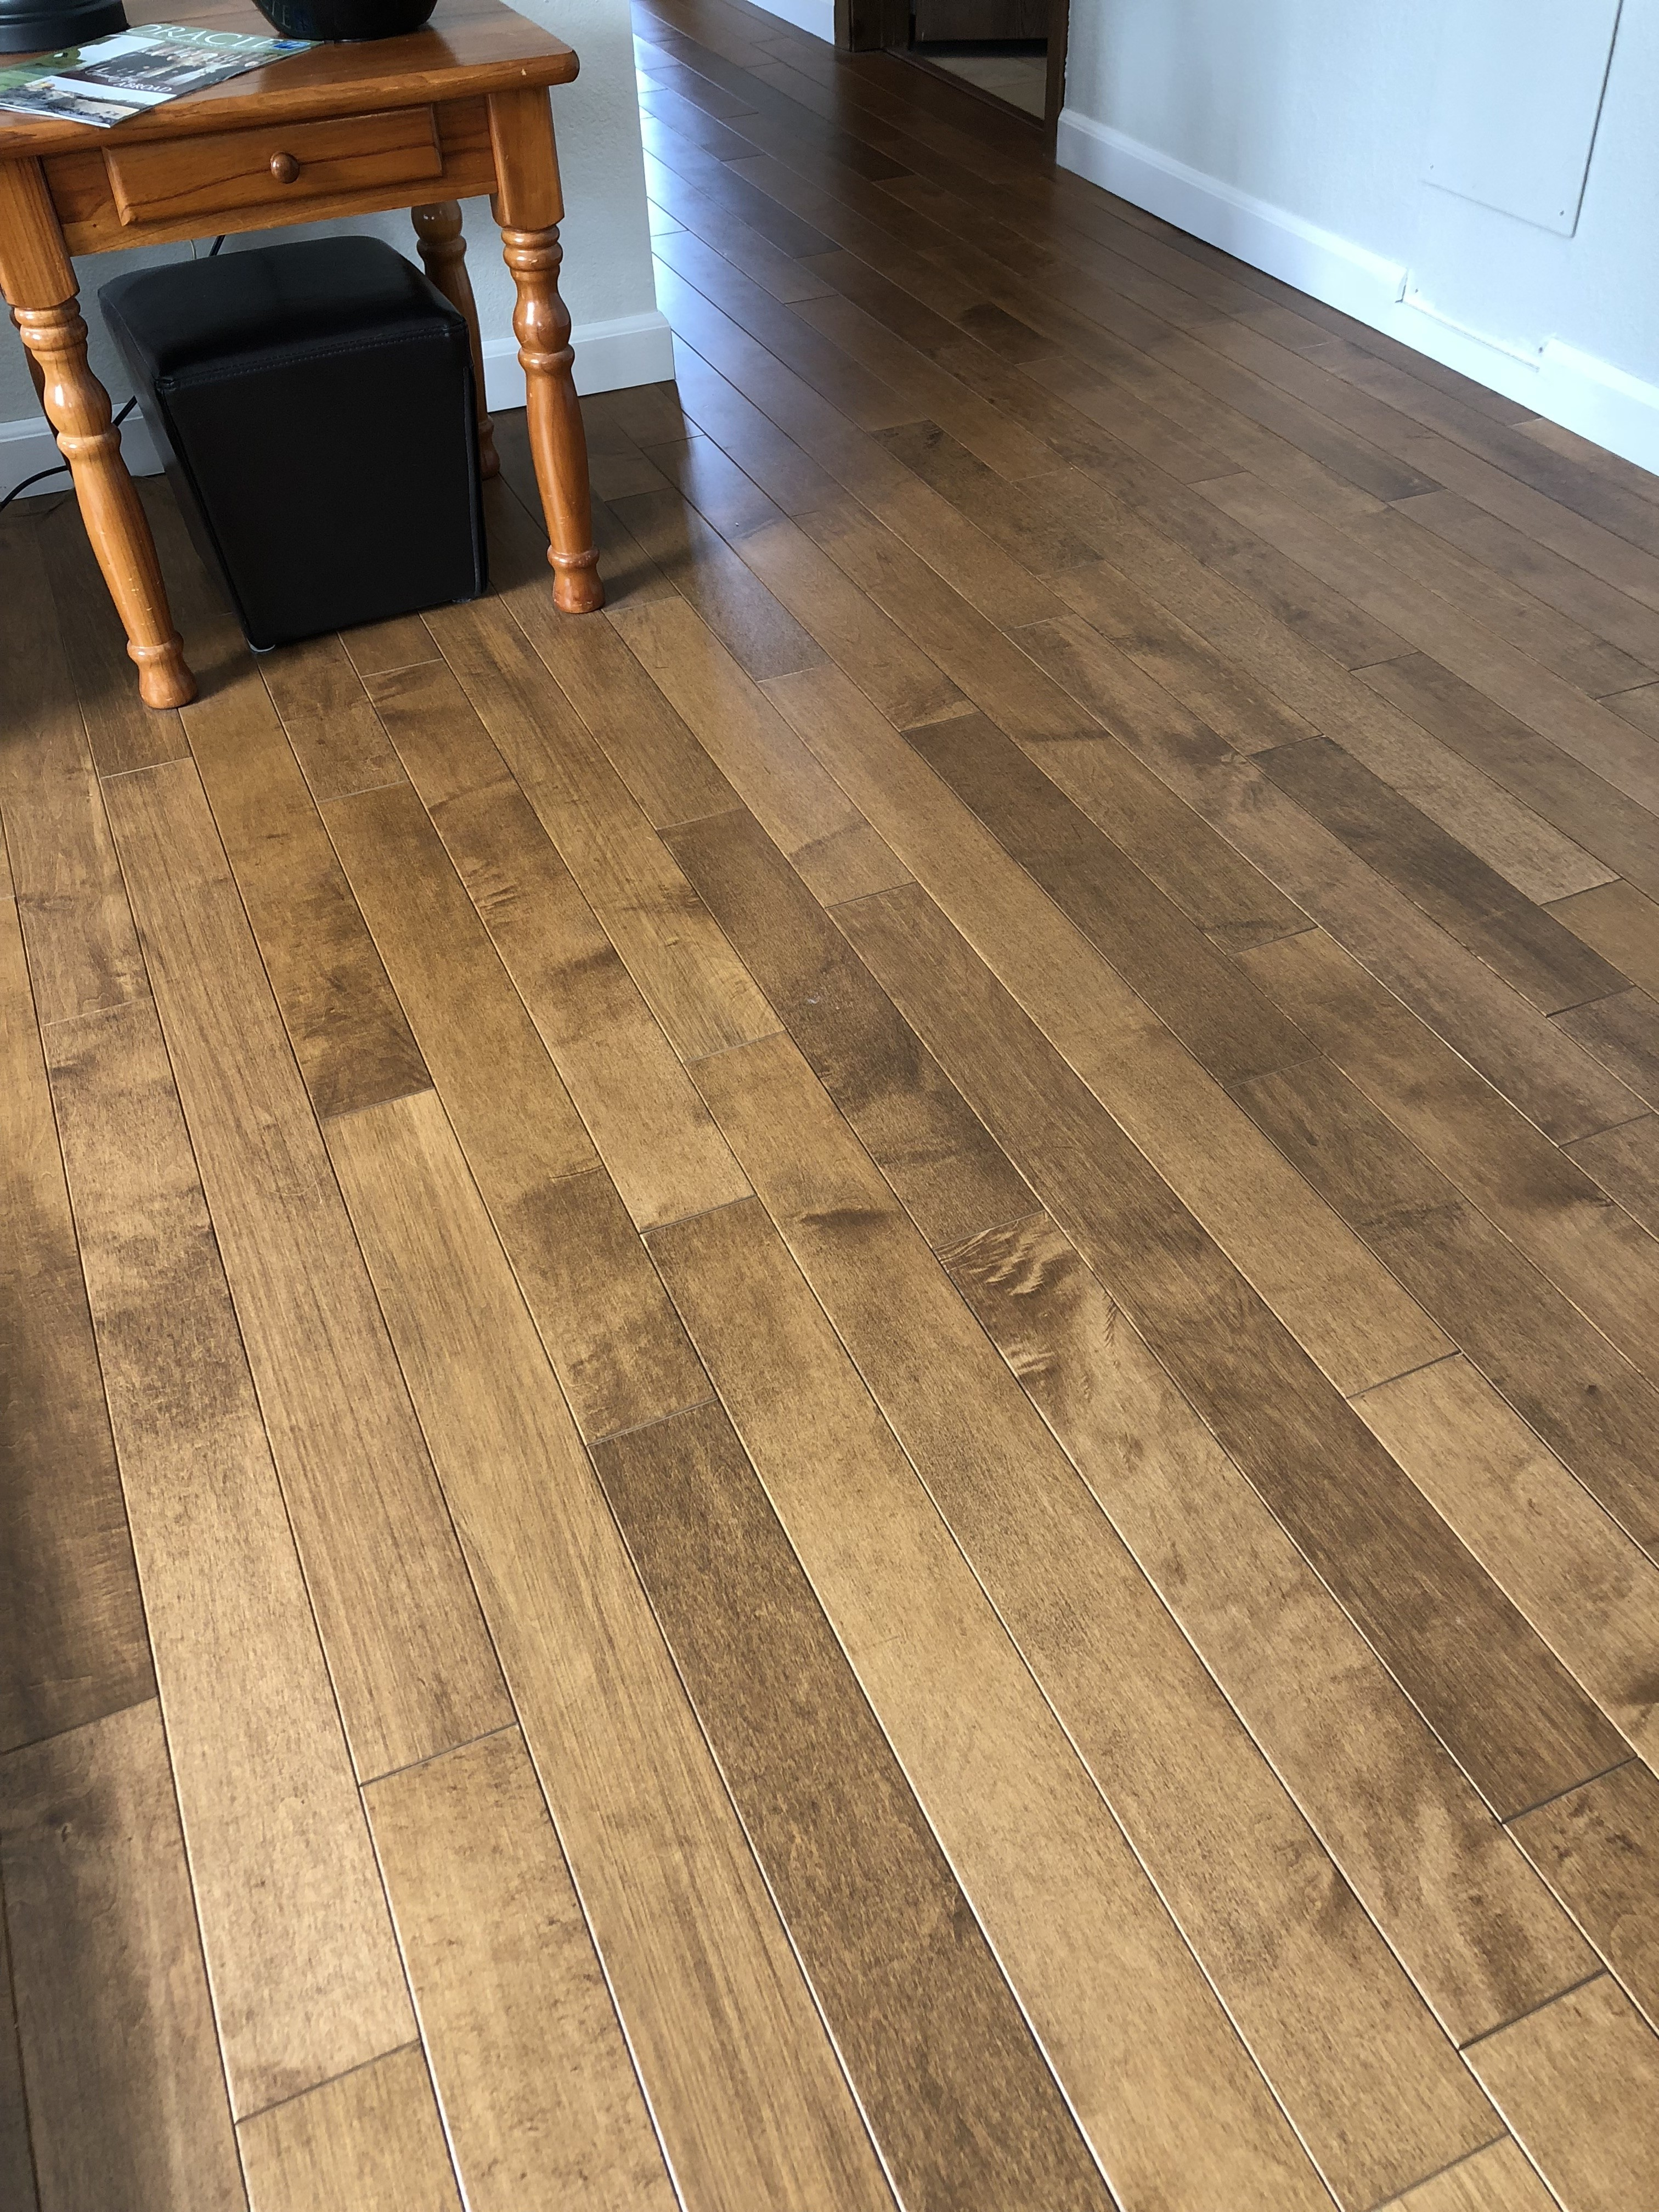 Centurion Collection Maple Chambord Flooring Prefinished